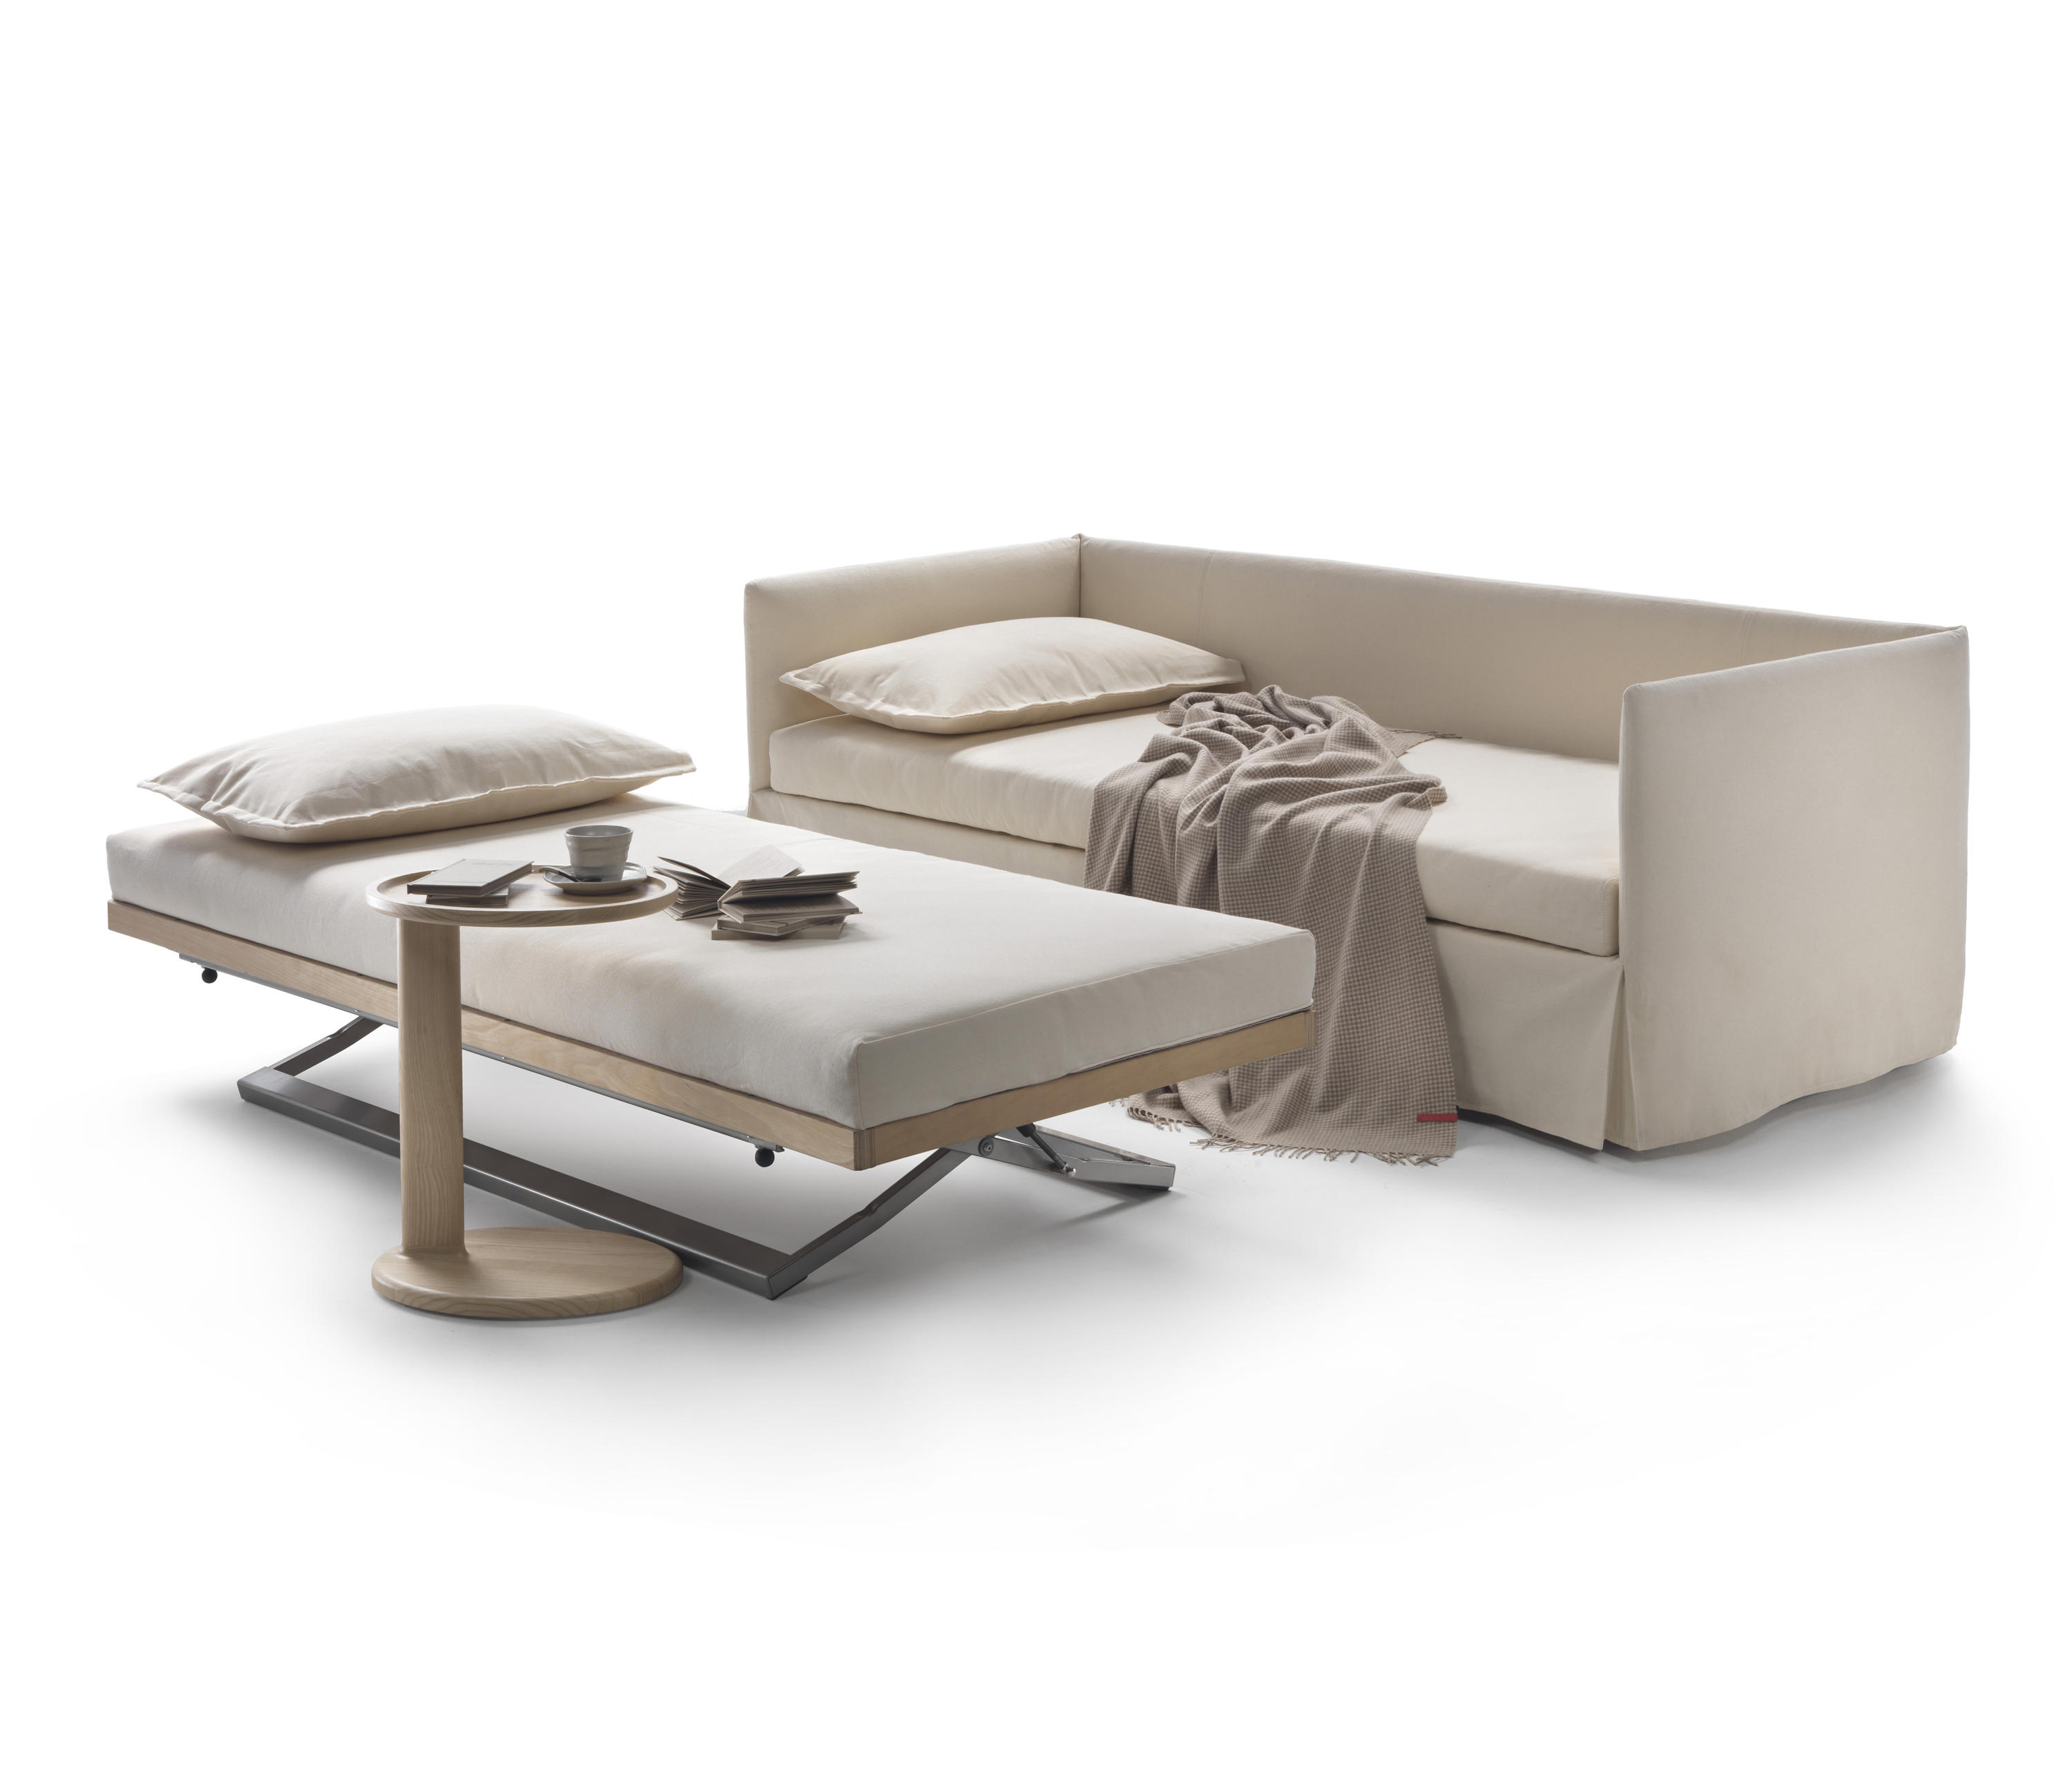 Twins schlafsofas von flexform architonic for Futon cama de dos plazas